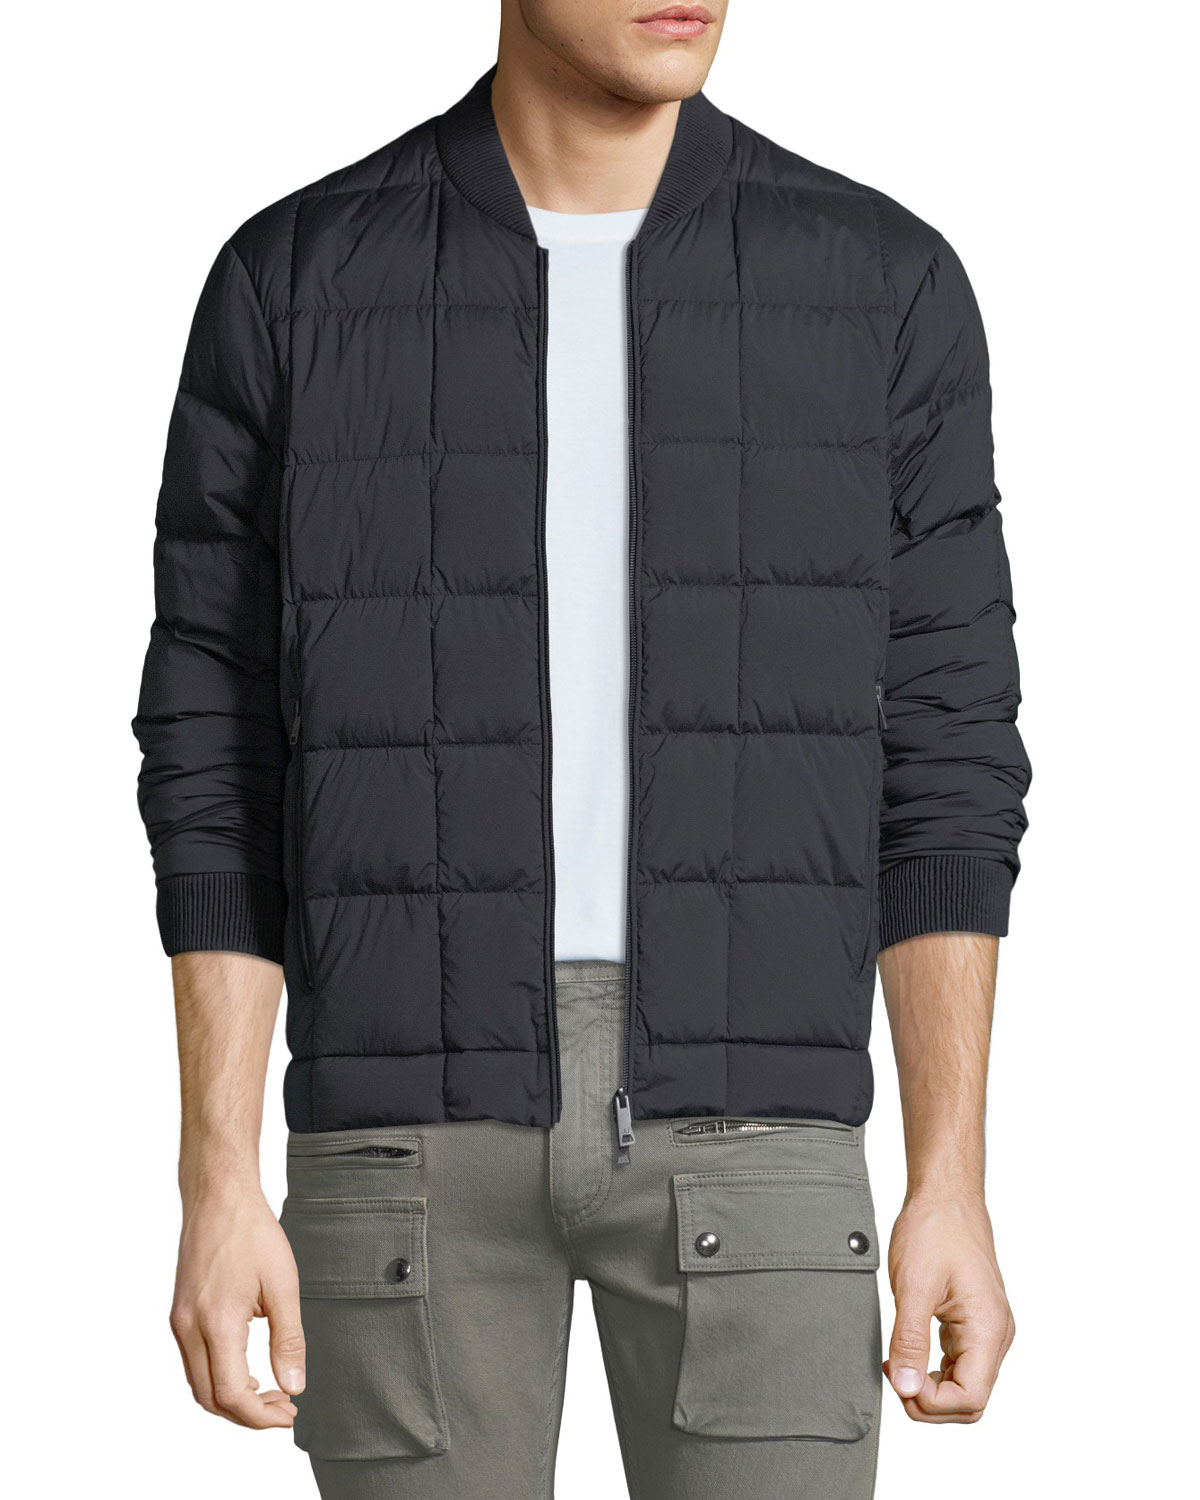 3a2ff63e2 Men's Stretch-Check Quilted Bomber Jacket